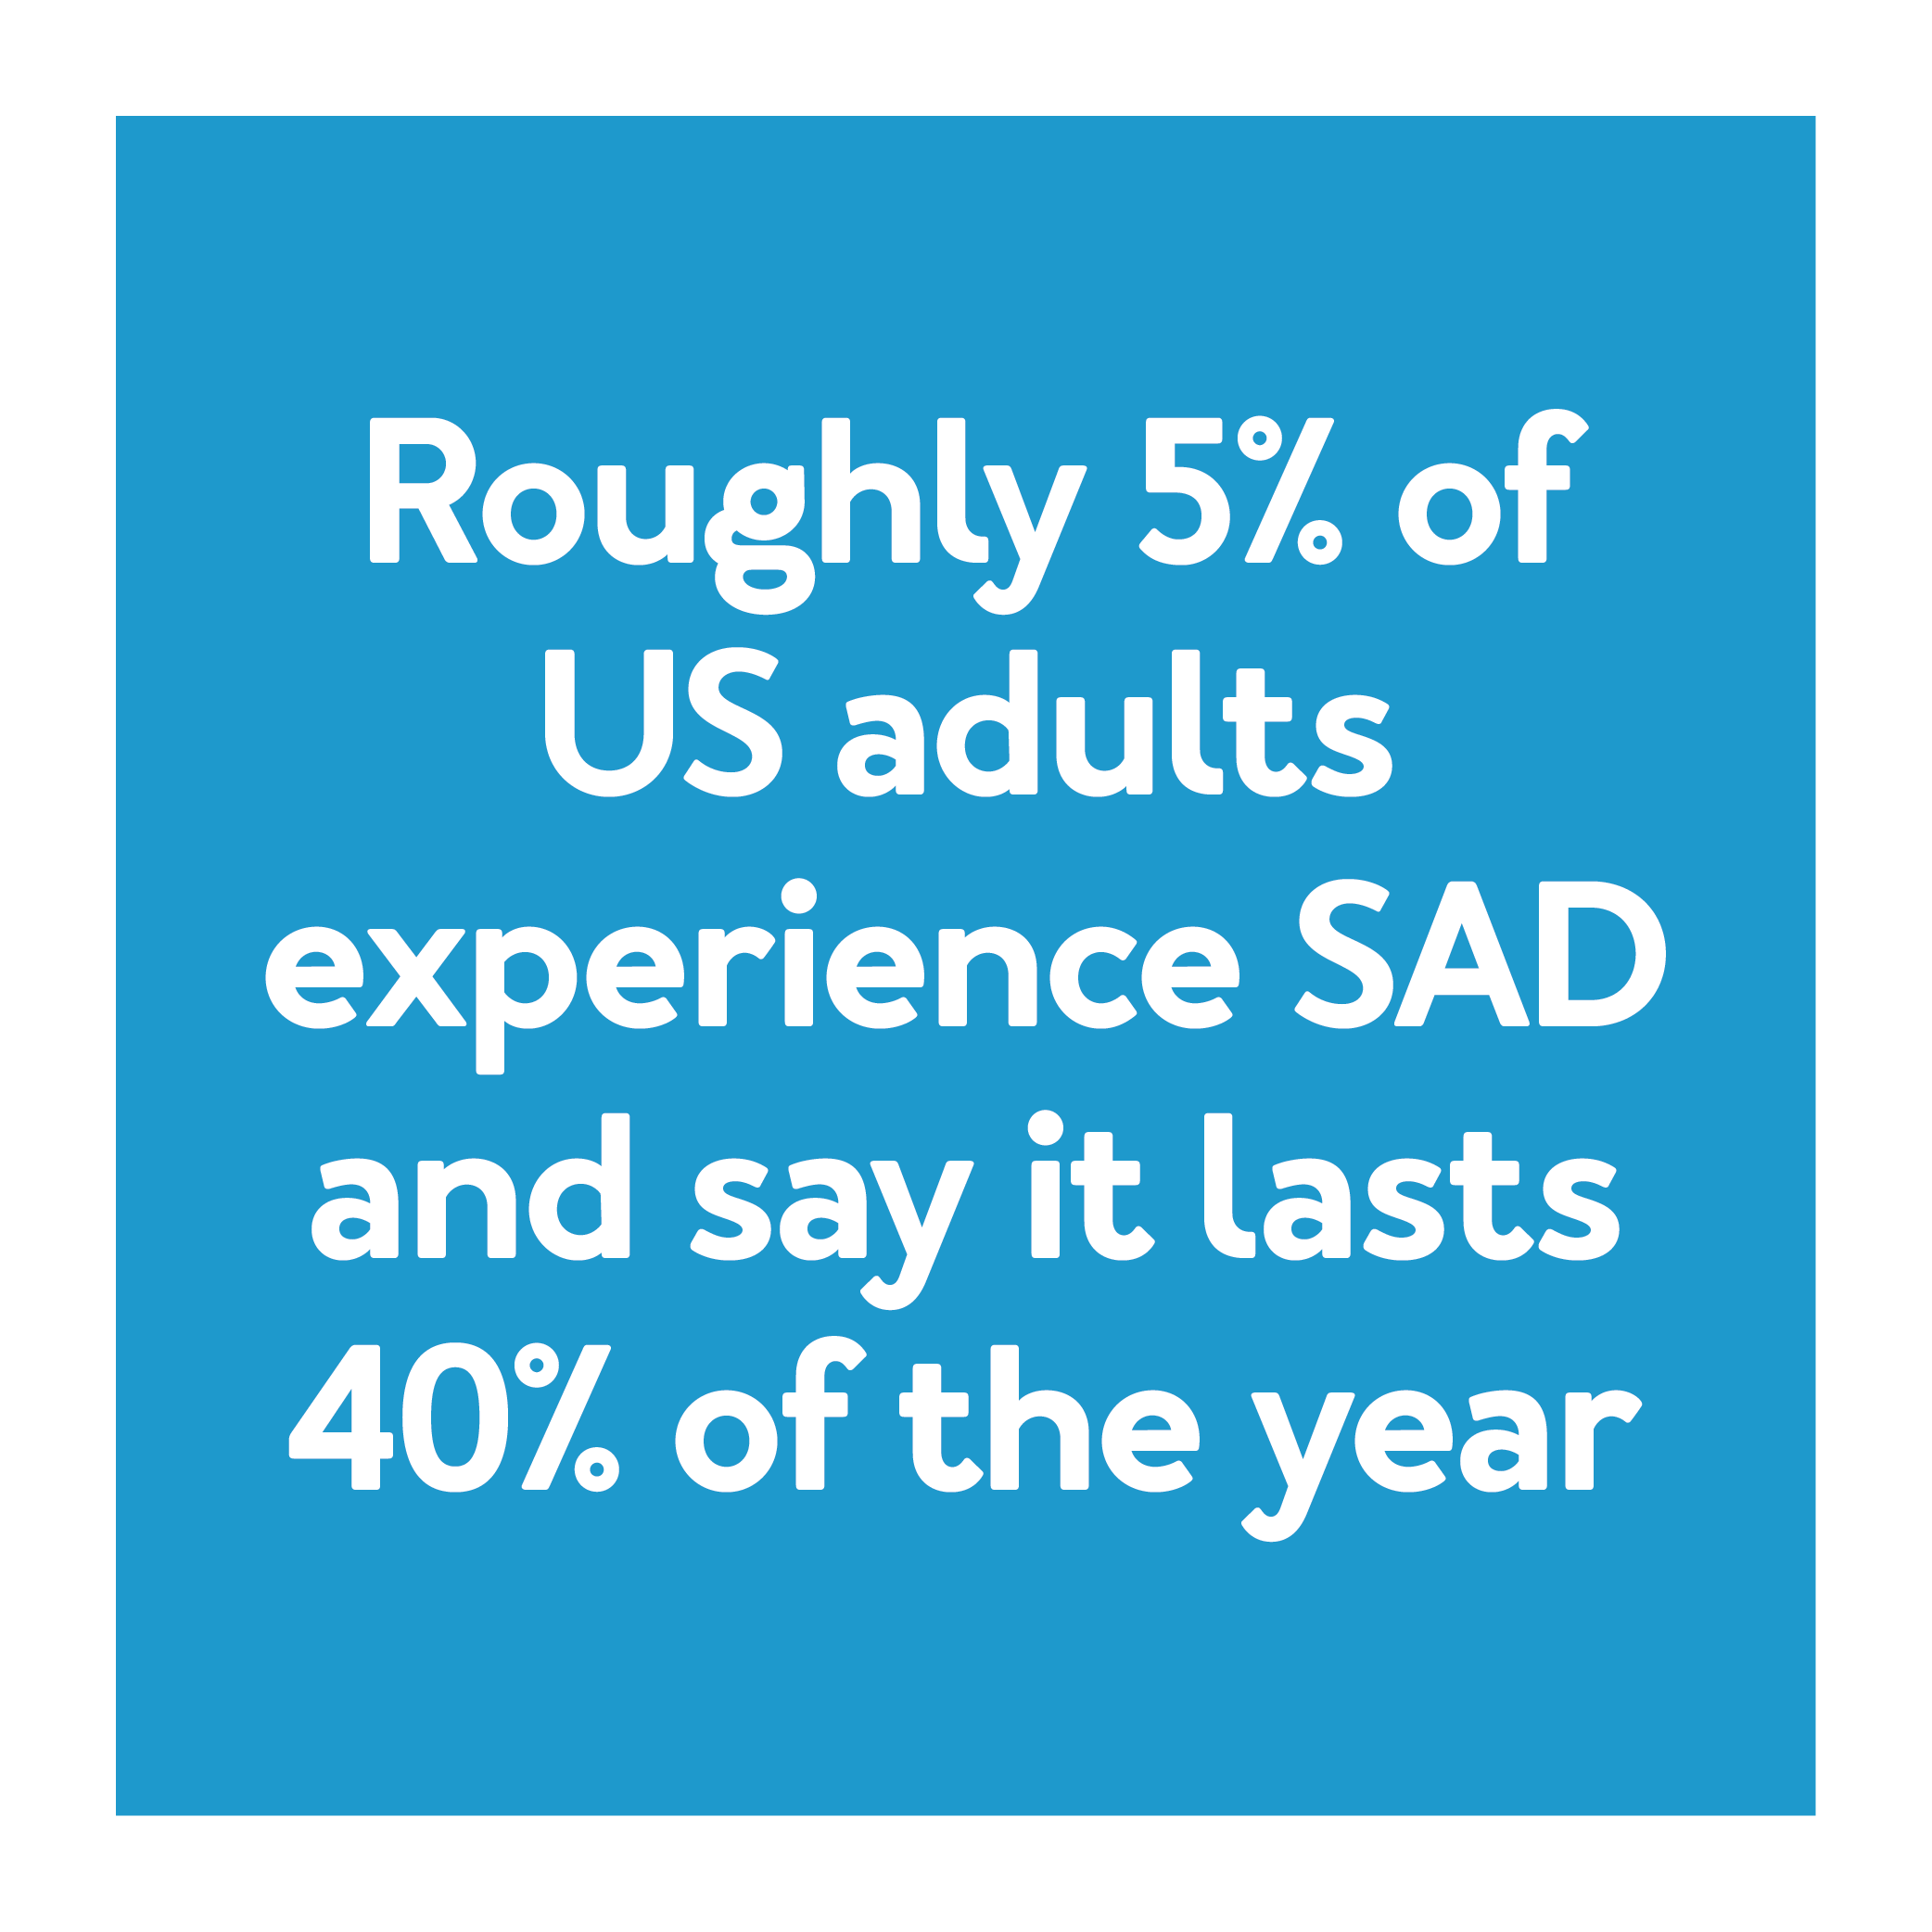 Roughly 5% of U.S. adults experience SAD and say it lasts 40% of the year.